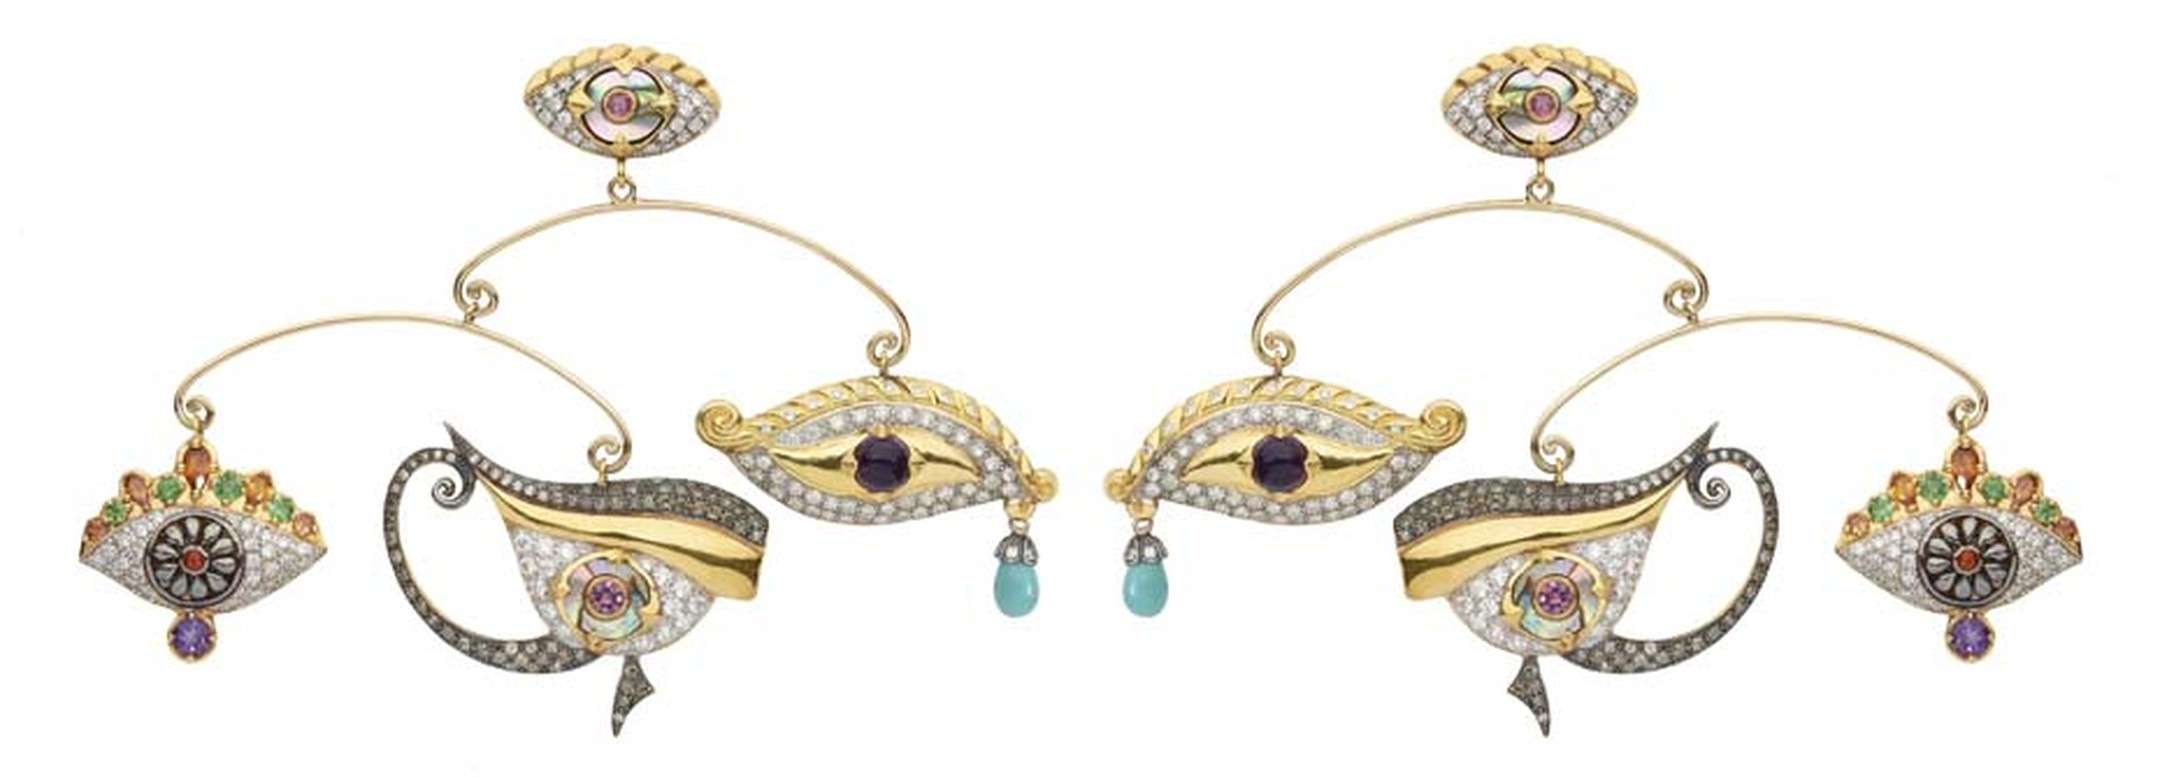 Sylvie Corbelin Fascination collection mobile earrings featuring three gem-encrusted eyes suspended from a central stud, also in the shape of an eye.